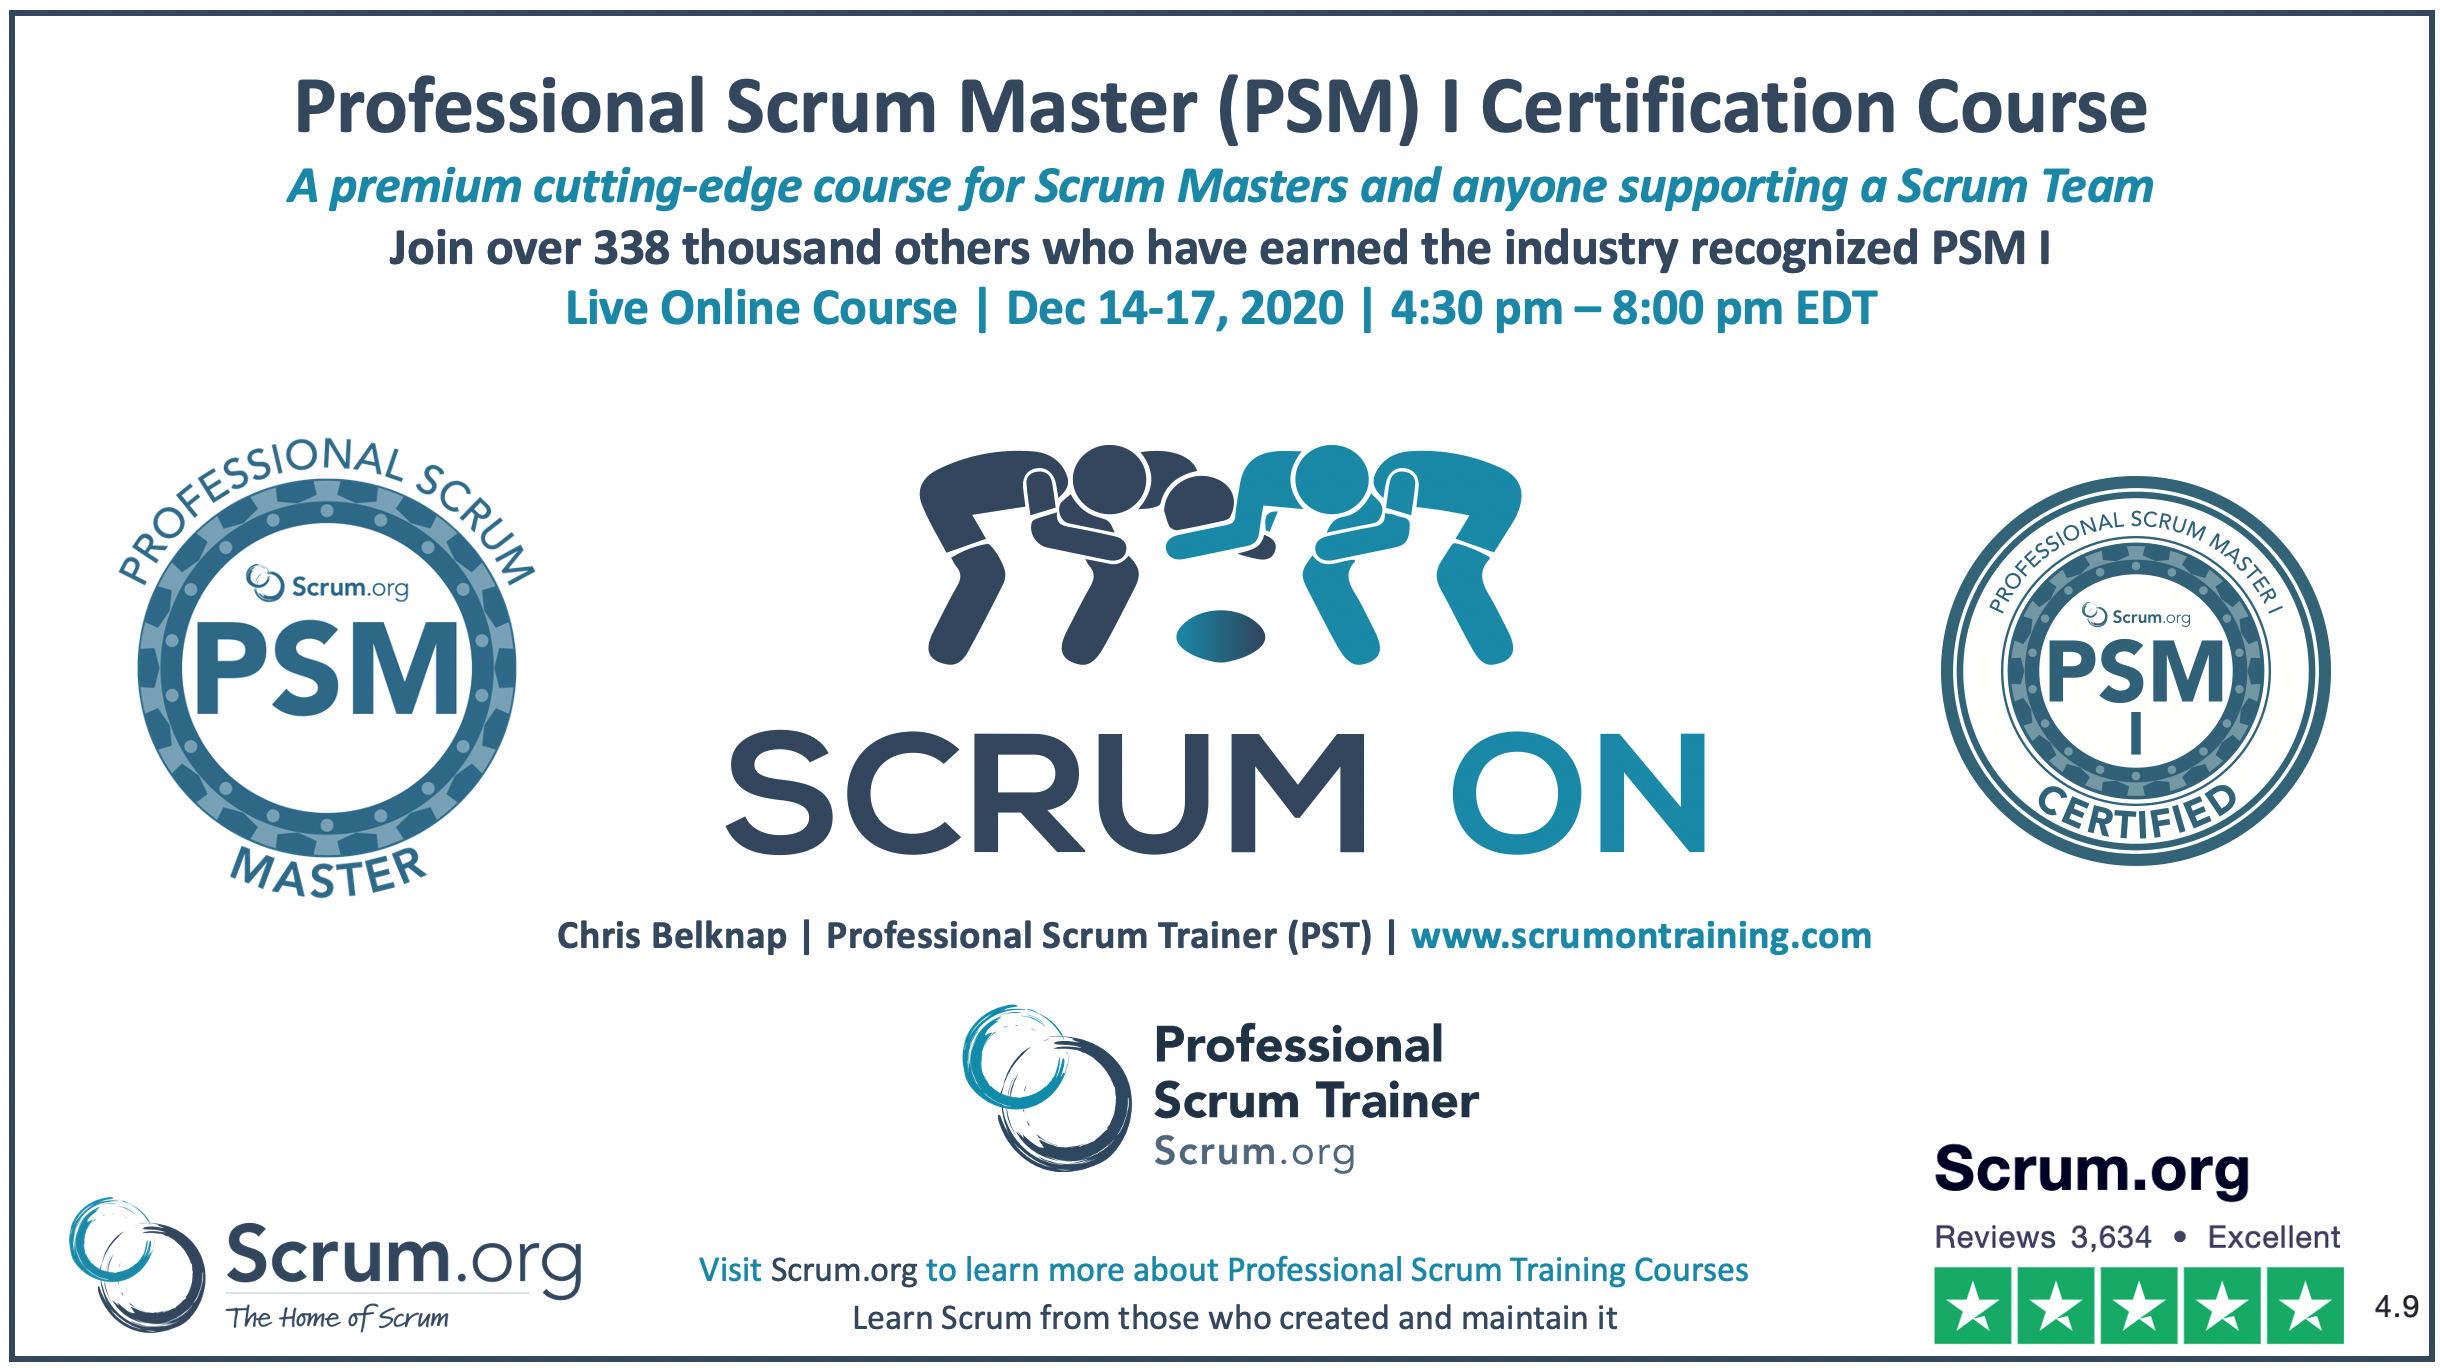 Professional Scrum Master PSM I Course Live Online